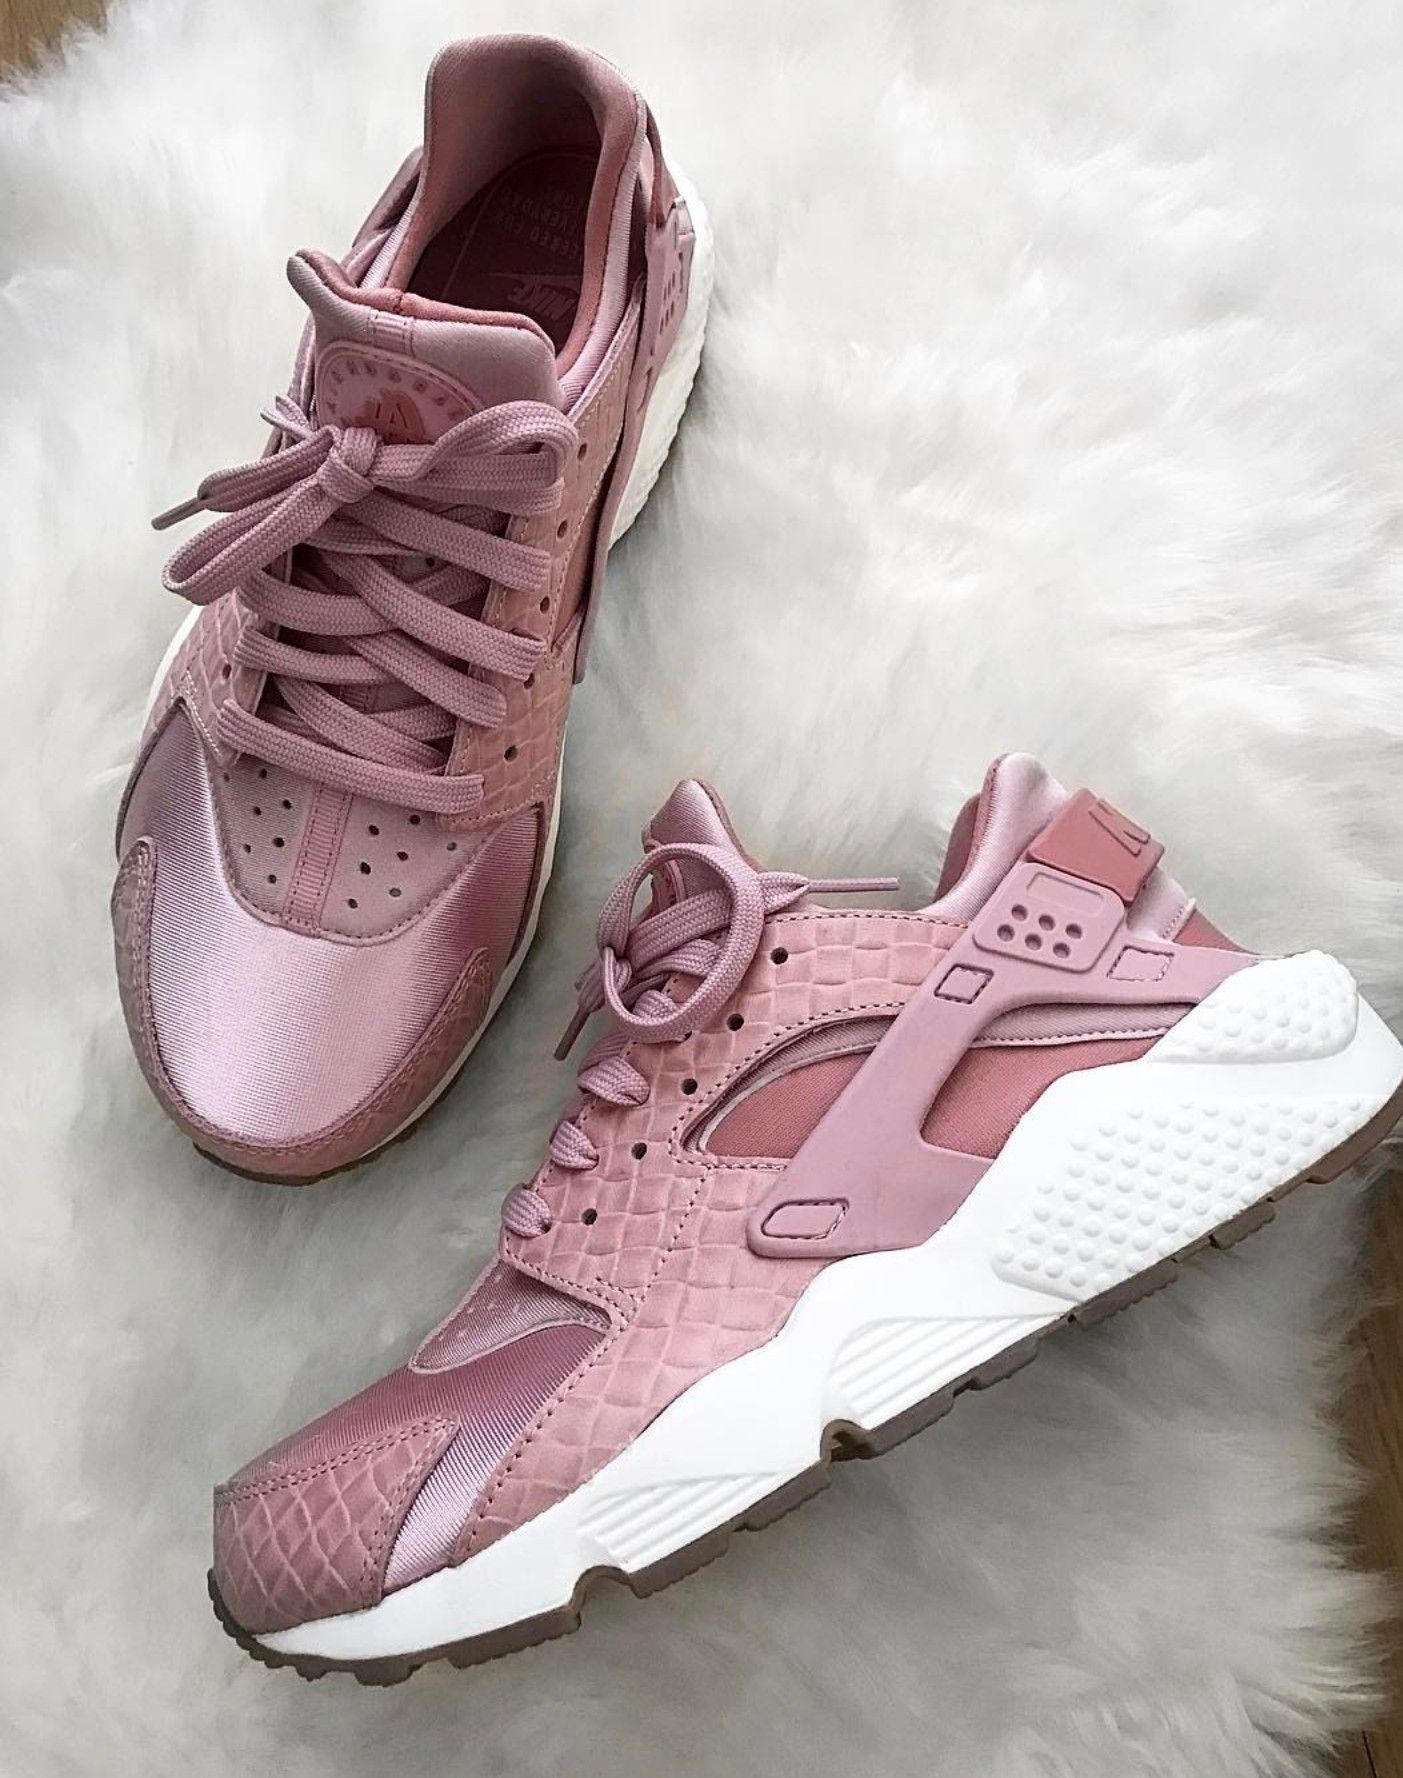 best sneakers 6d059 e3bb3 Nike Huarache in rosa   Foto  fashionthingsbylisa  Instagram